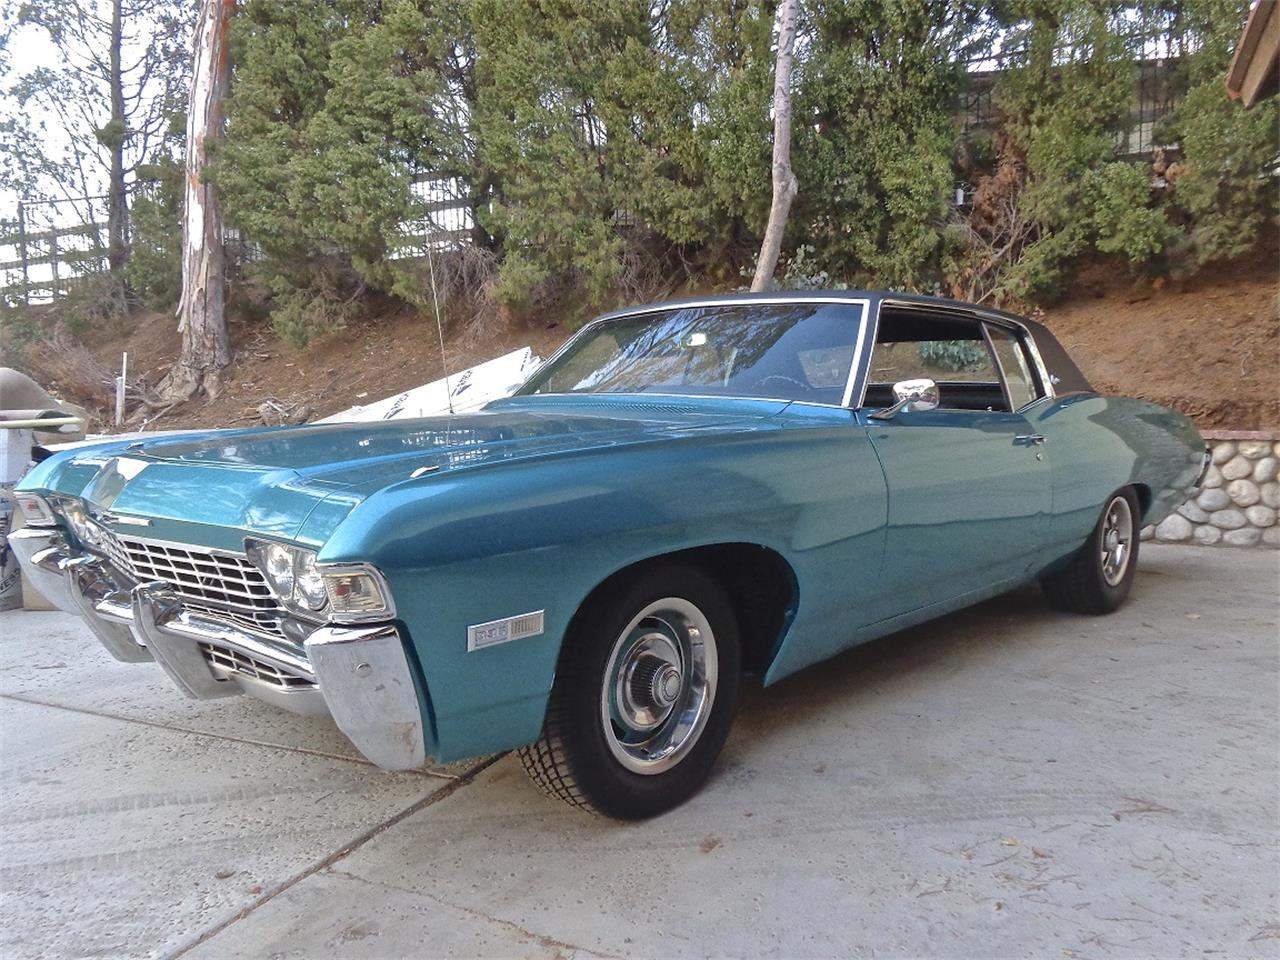 1968 Chevrolet Caprice For Sale Cc 1005486 2 Door Large Picture Of Classic Located In California 1450000 Offered By A Private Seller